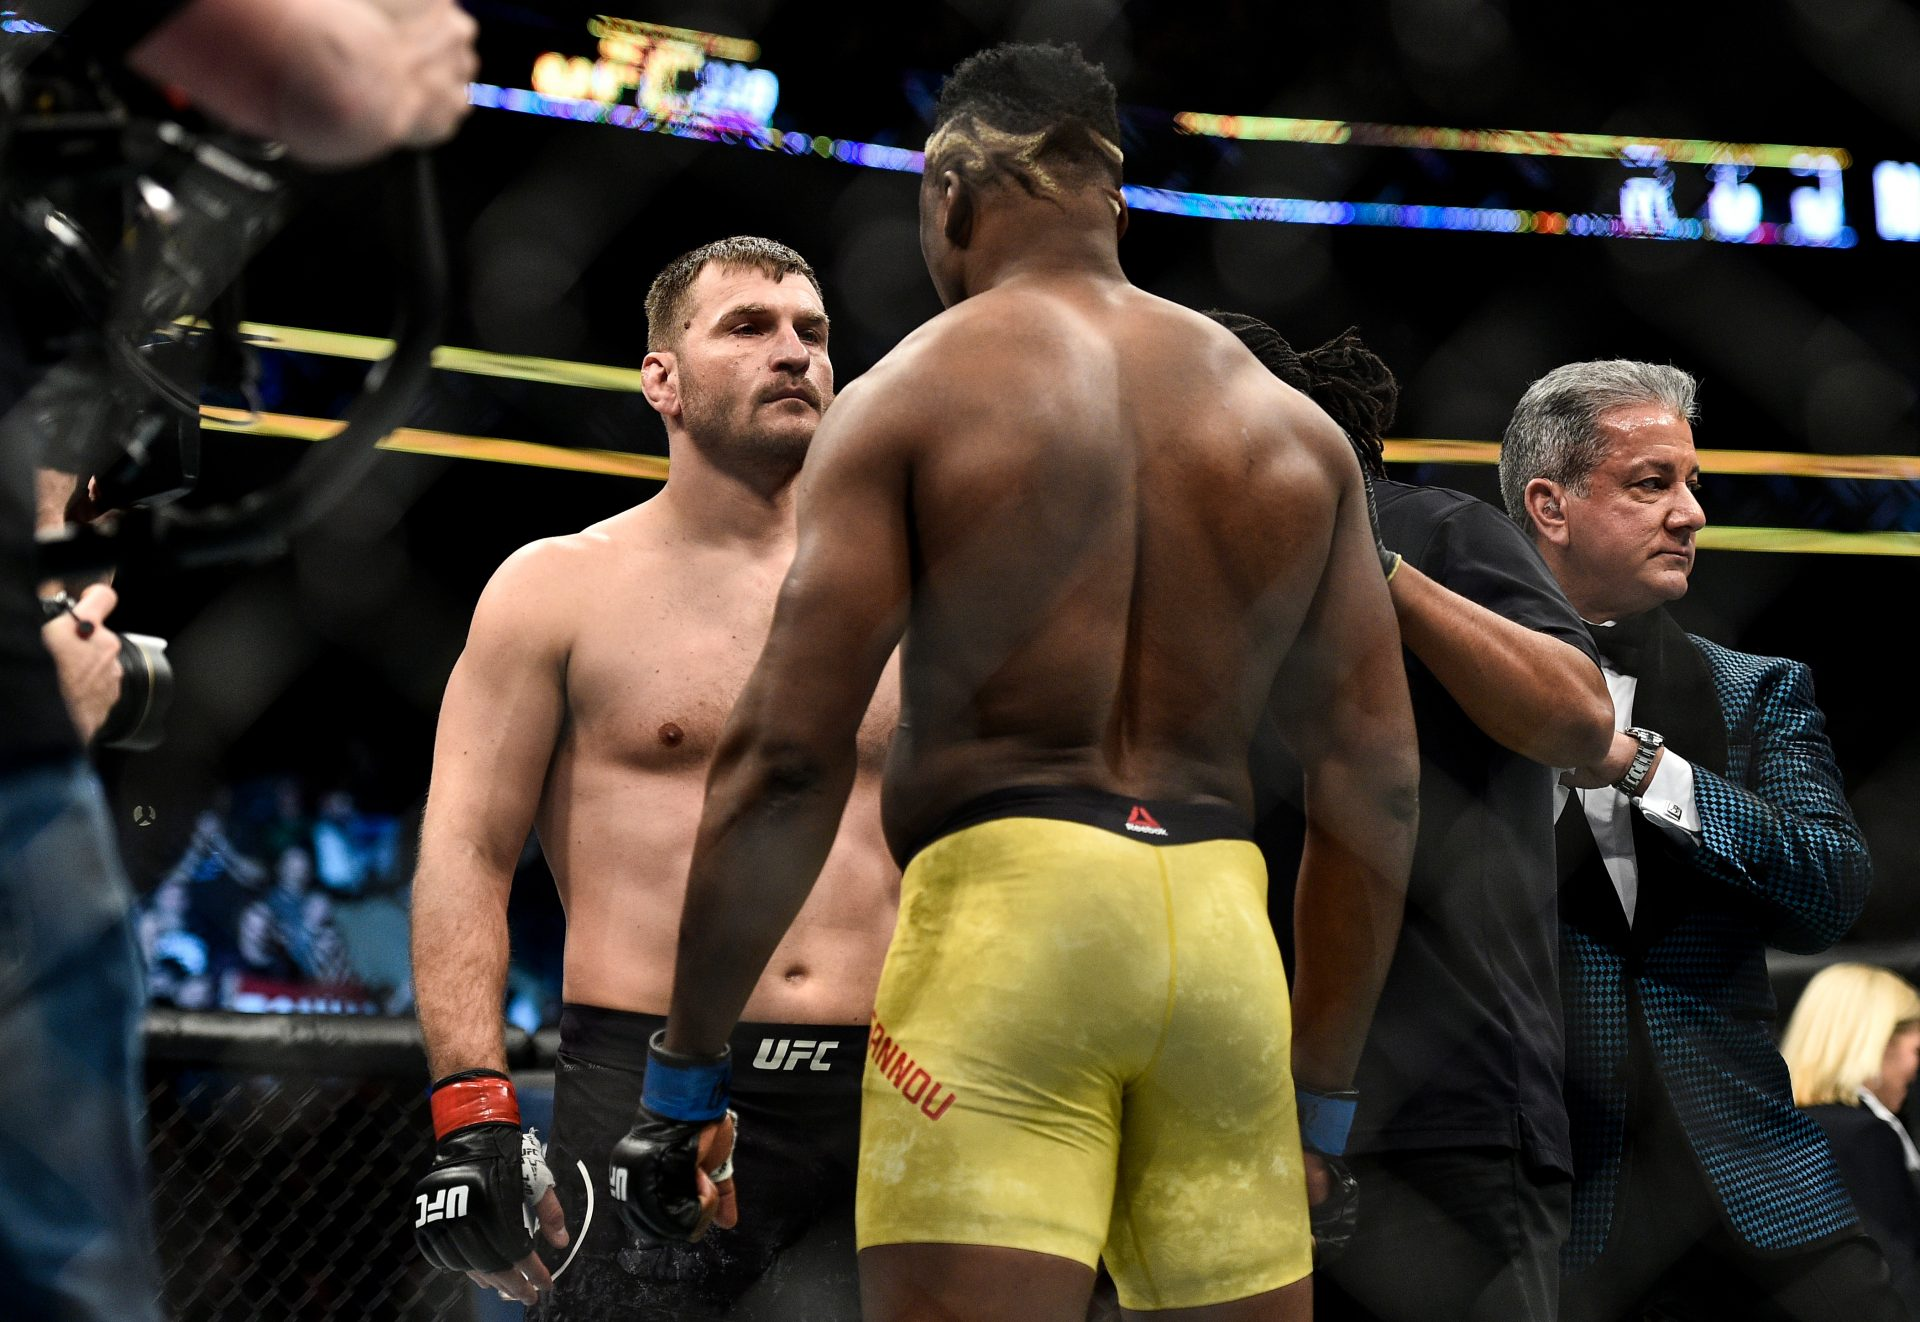 Stipe Miocic is 100 percent confident that he can defeat Francis Ngannou in a trilogy fight - Stipe